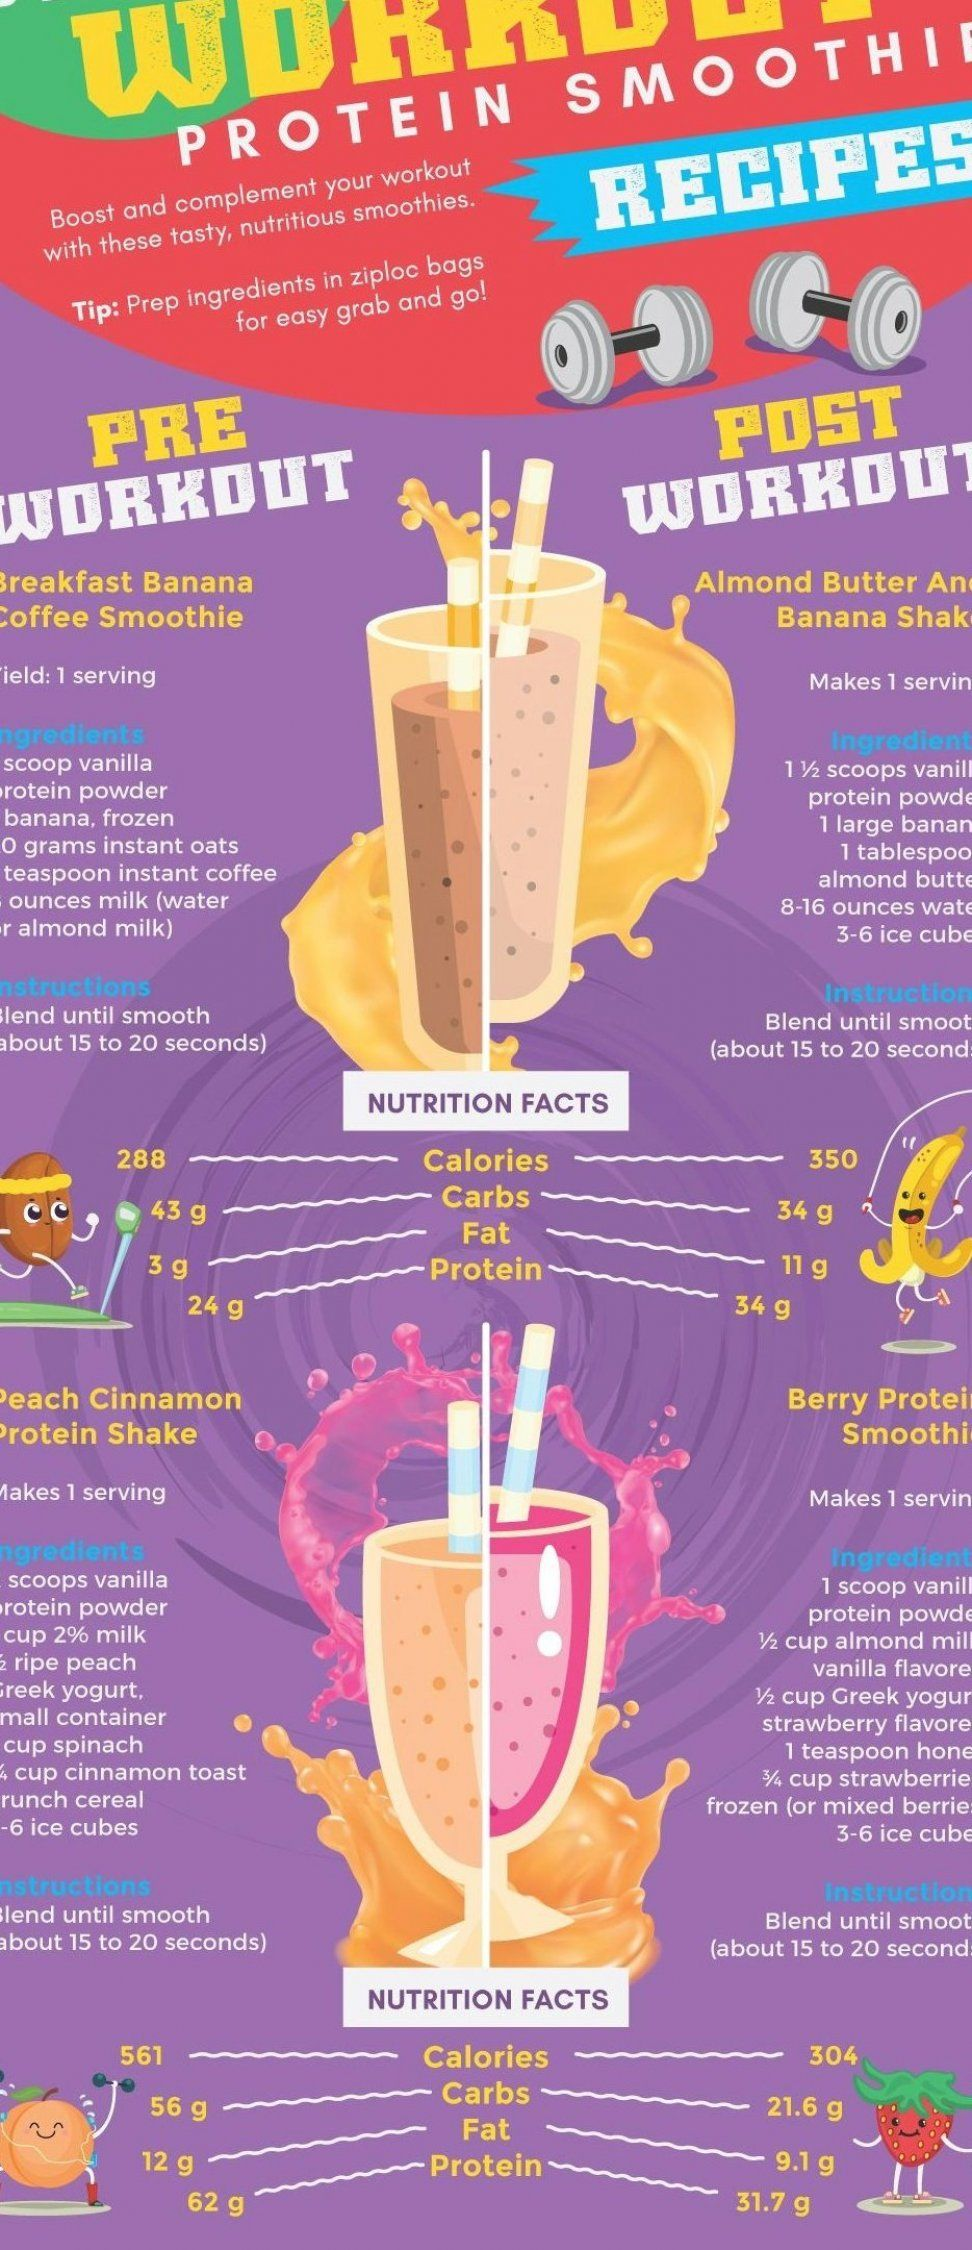 Infographic Best Pre And Post Workout Protein Smoothie Recipes Whey Protein After Workout In 2020 Protein Shake Recipes Protein Smoothie Recipes Smoothie Recipes